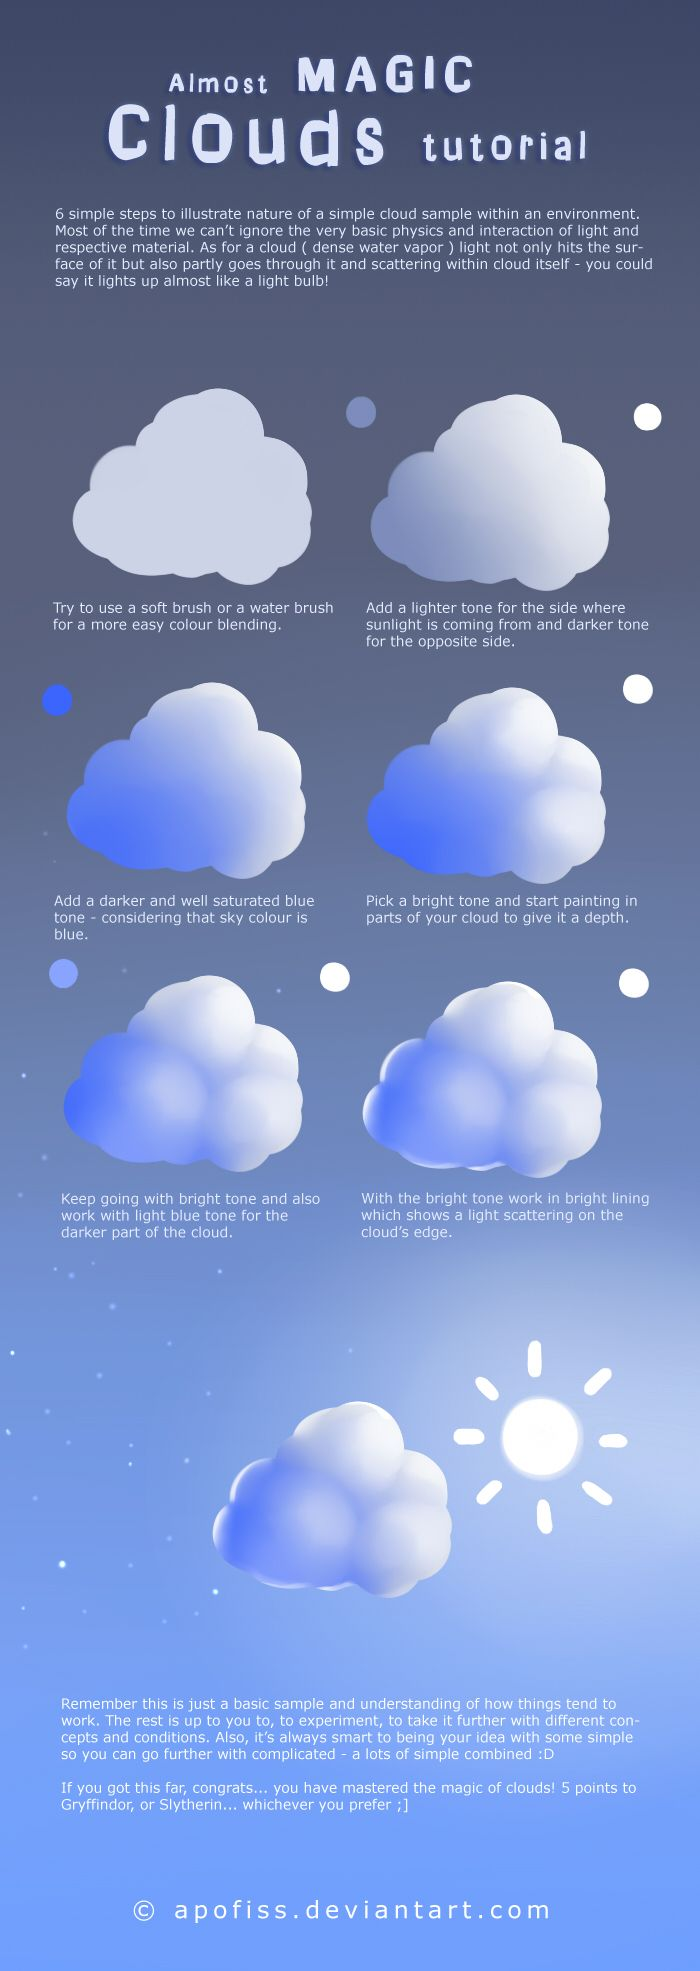 Almost Magic Clouds tutorial by on